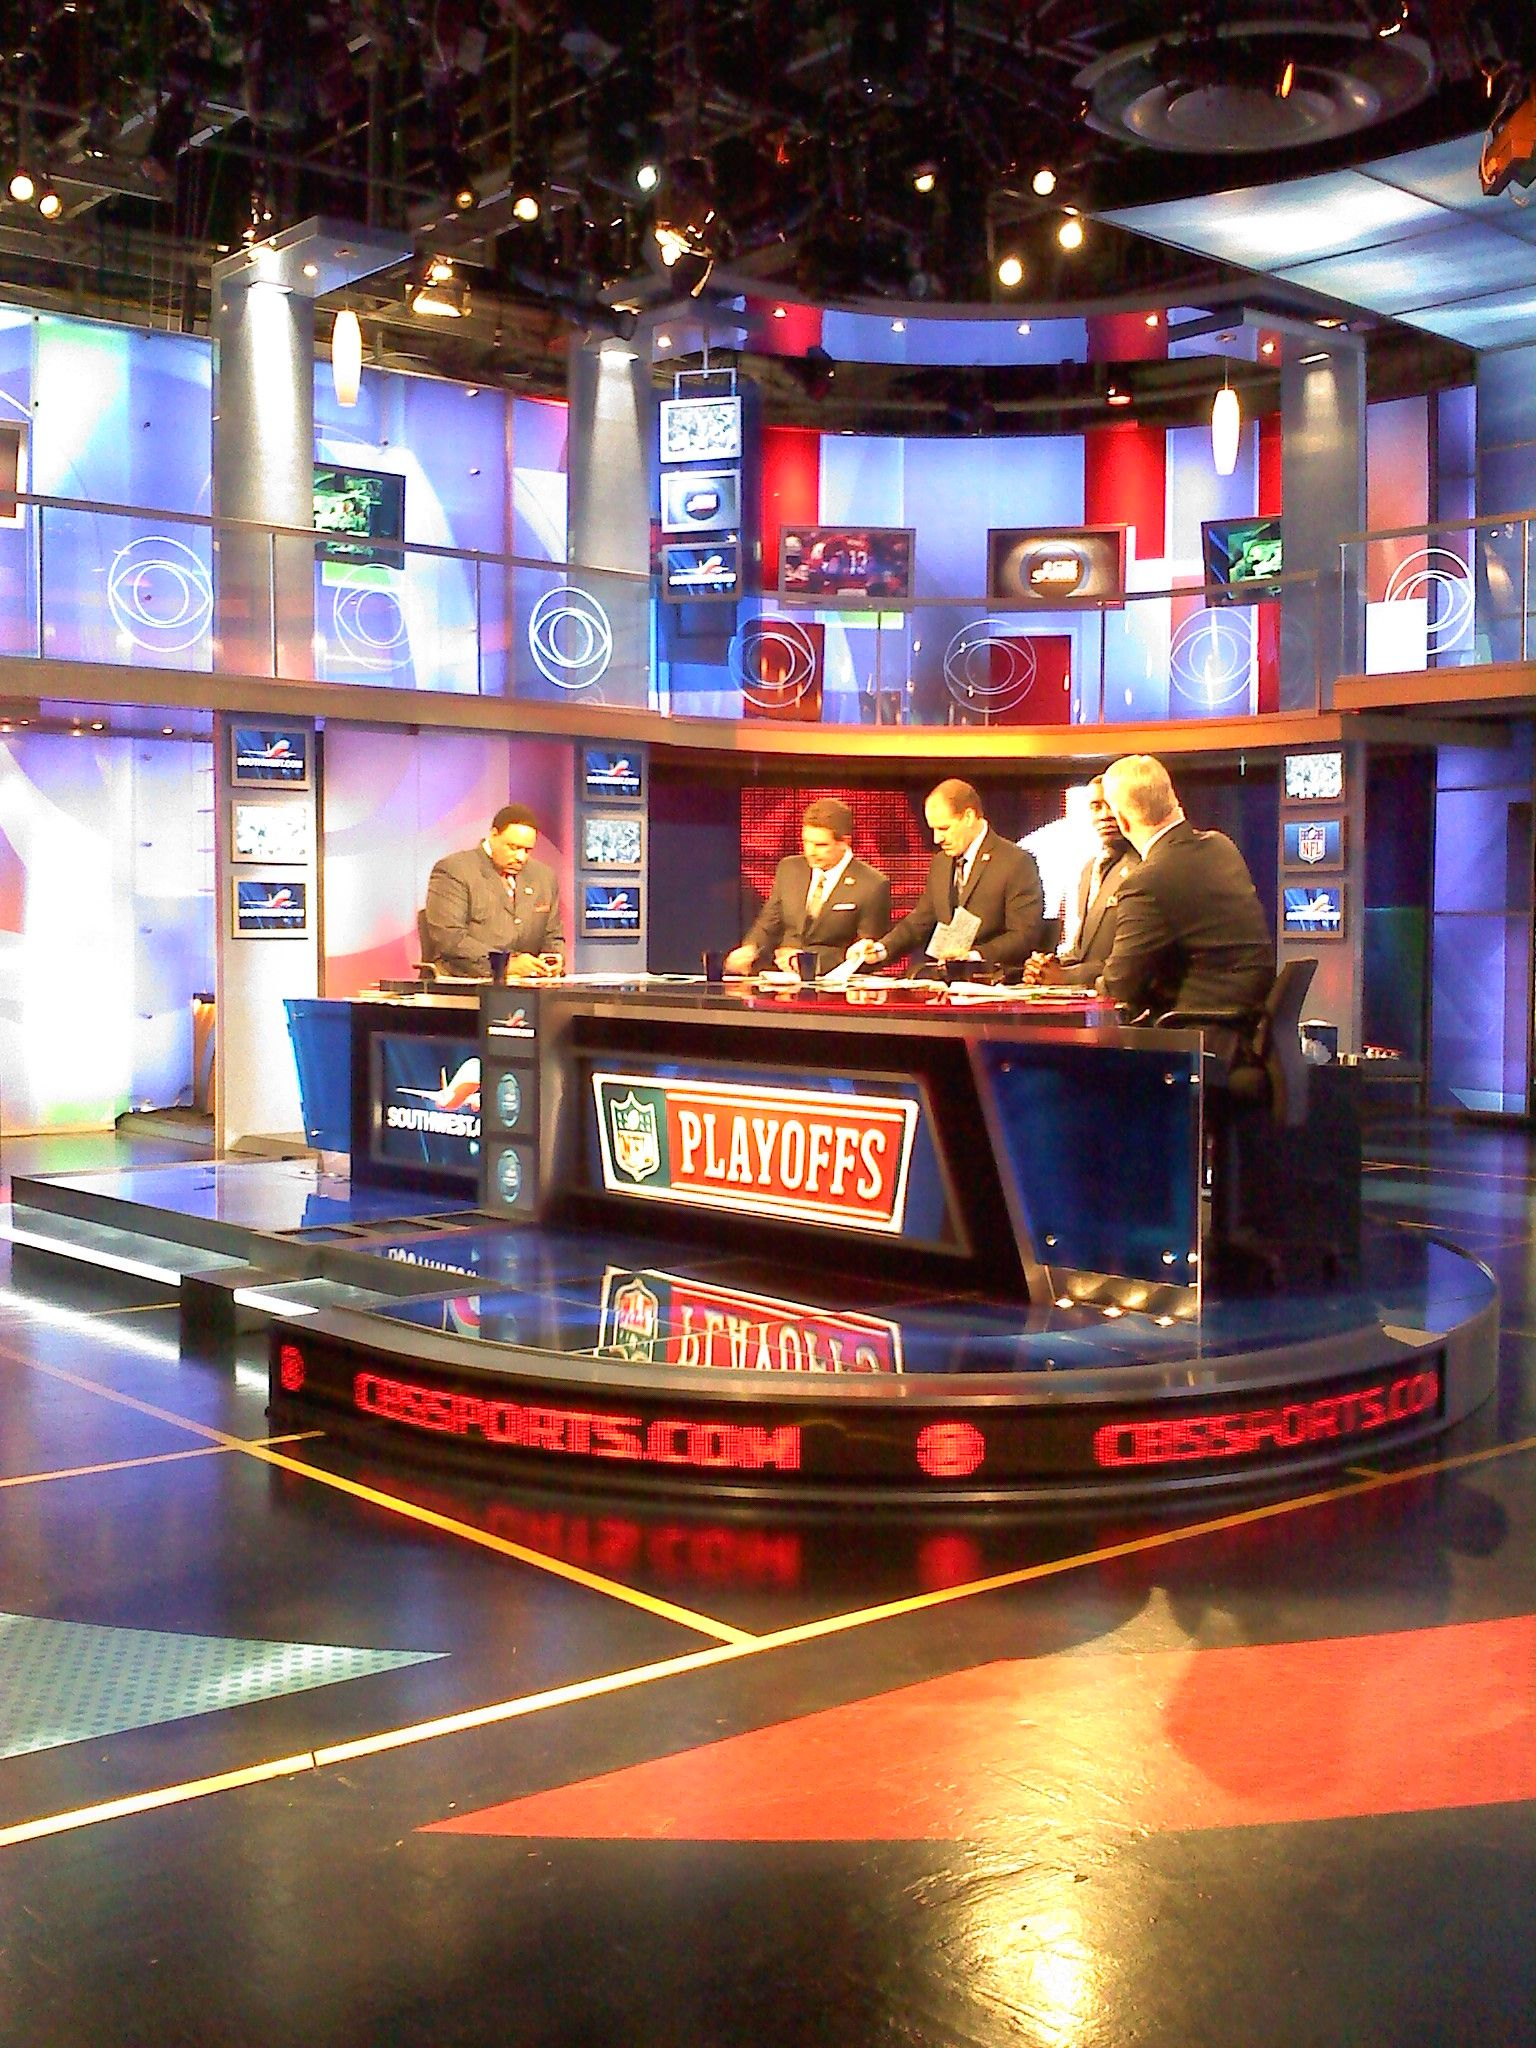 NFL Today team in CBS studio...my favorite NFL Sunday